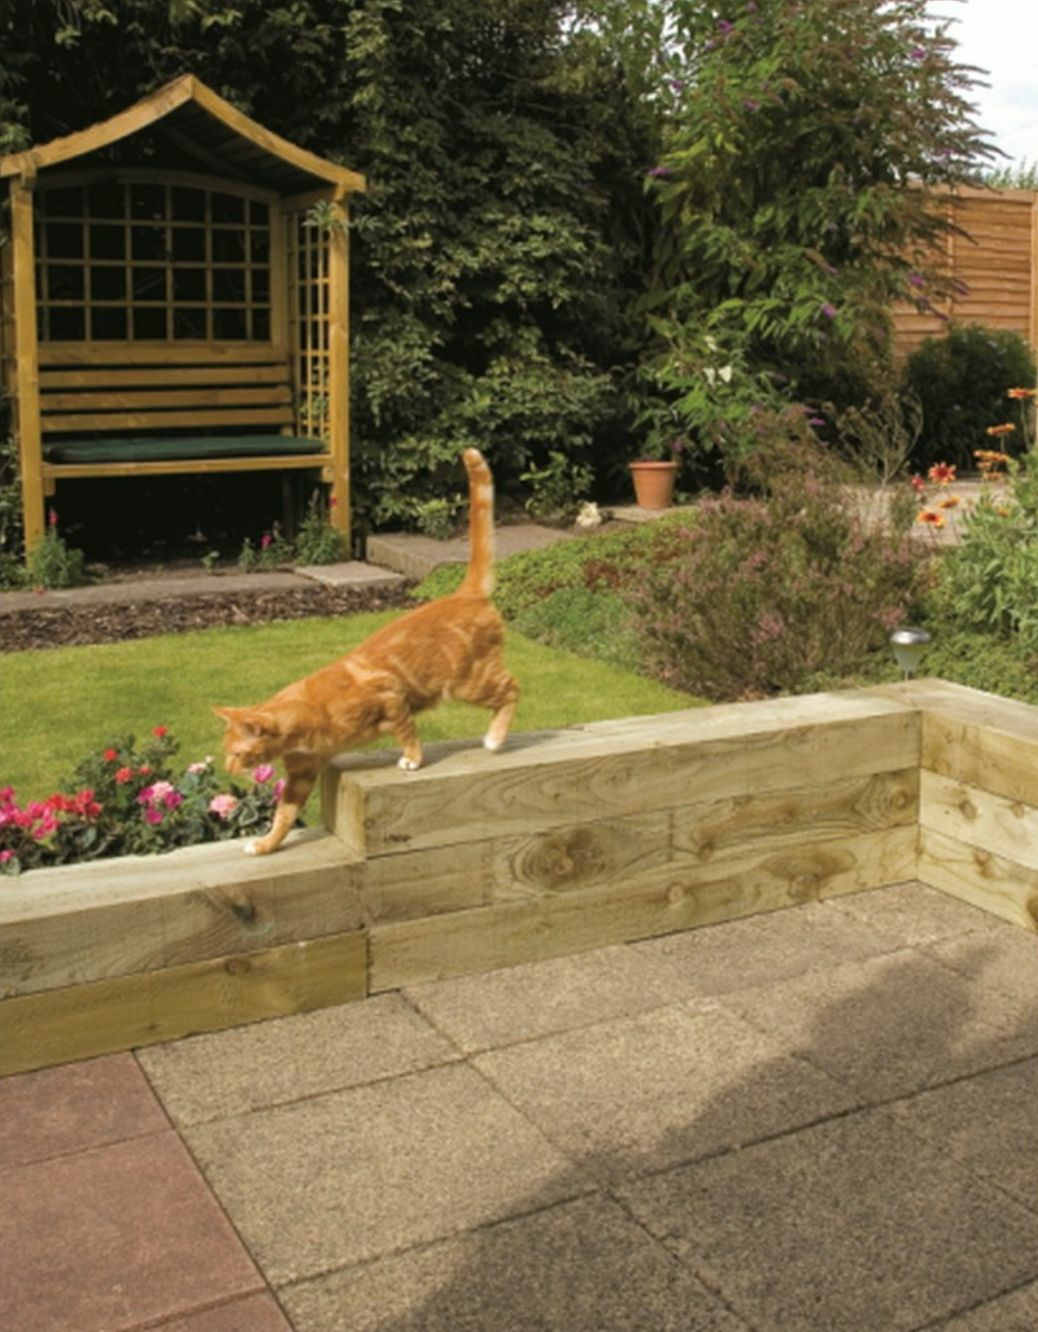 Details about Timber Sleepers Railway Sleepers Treated Wooden Sleepers  200x100mm & 250x125mm